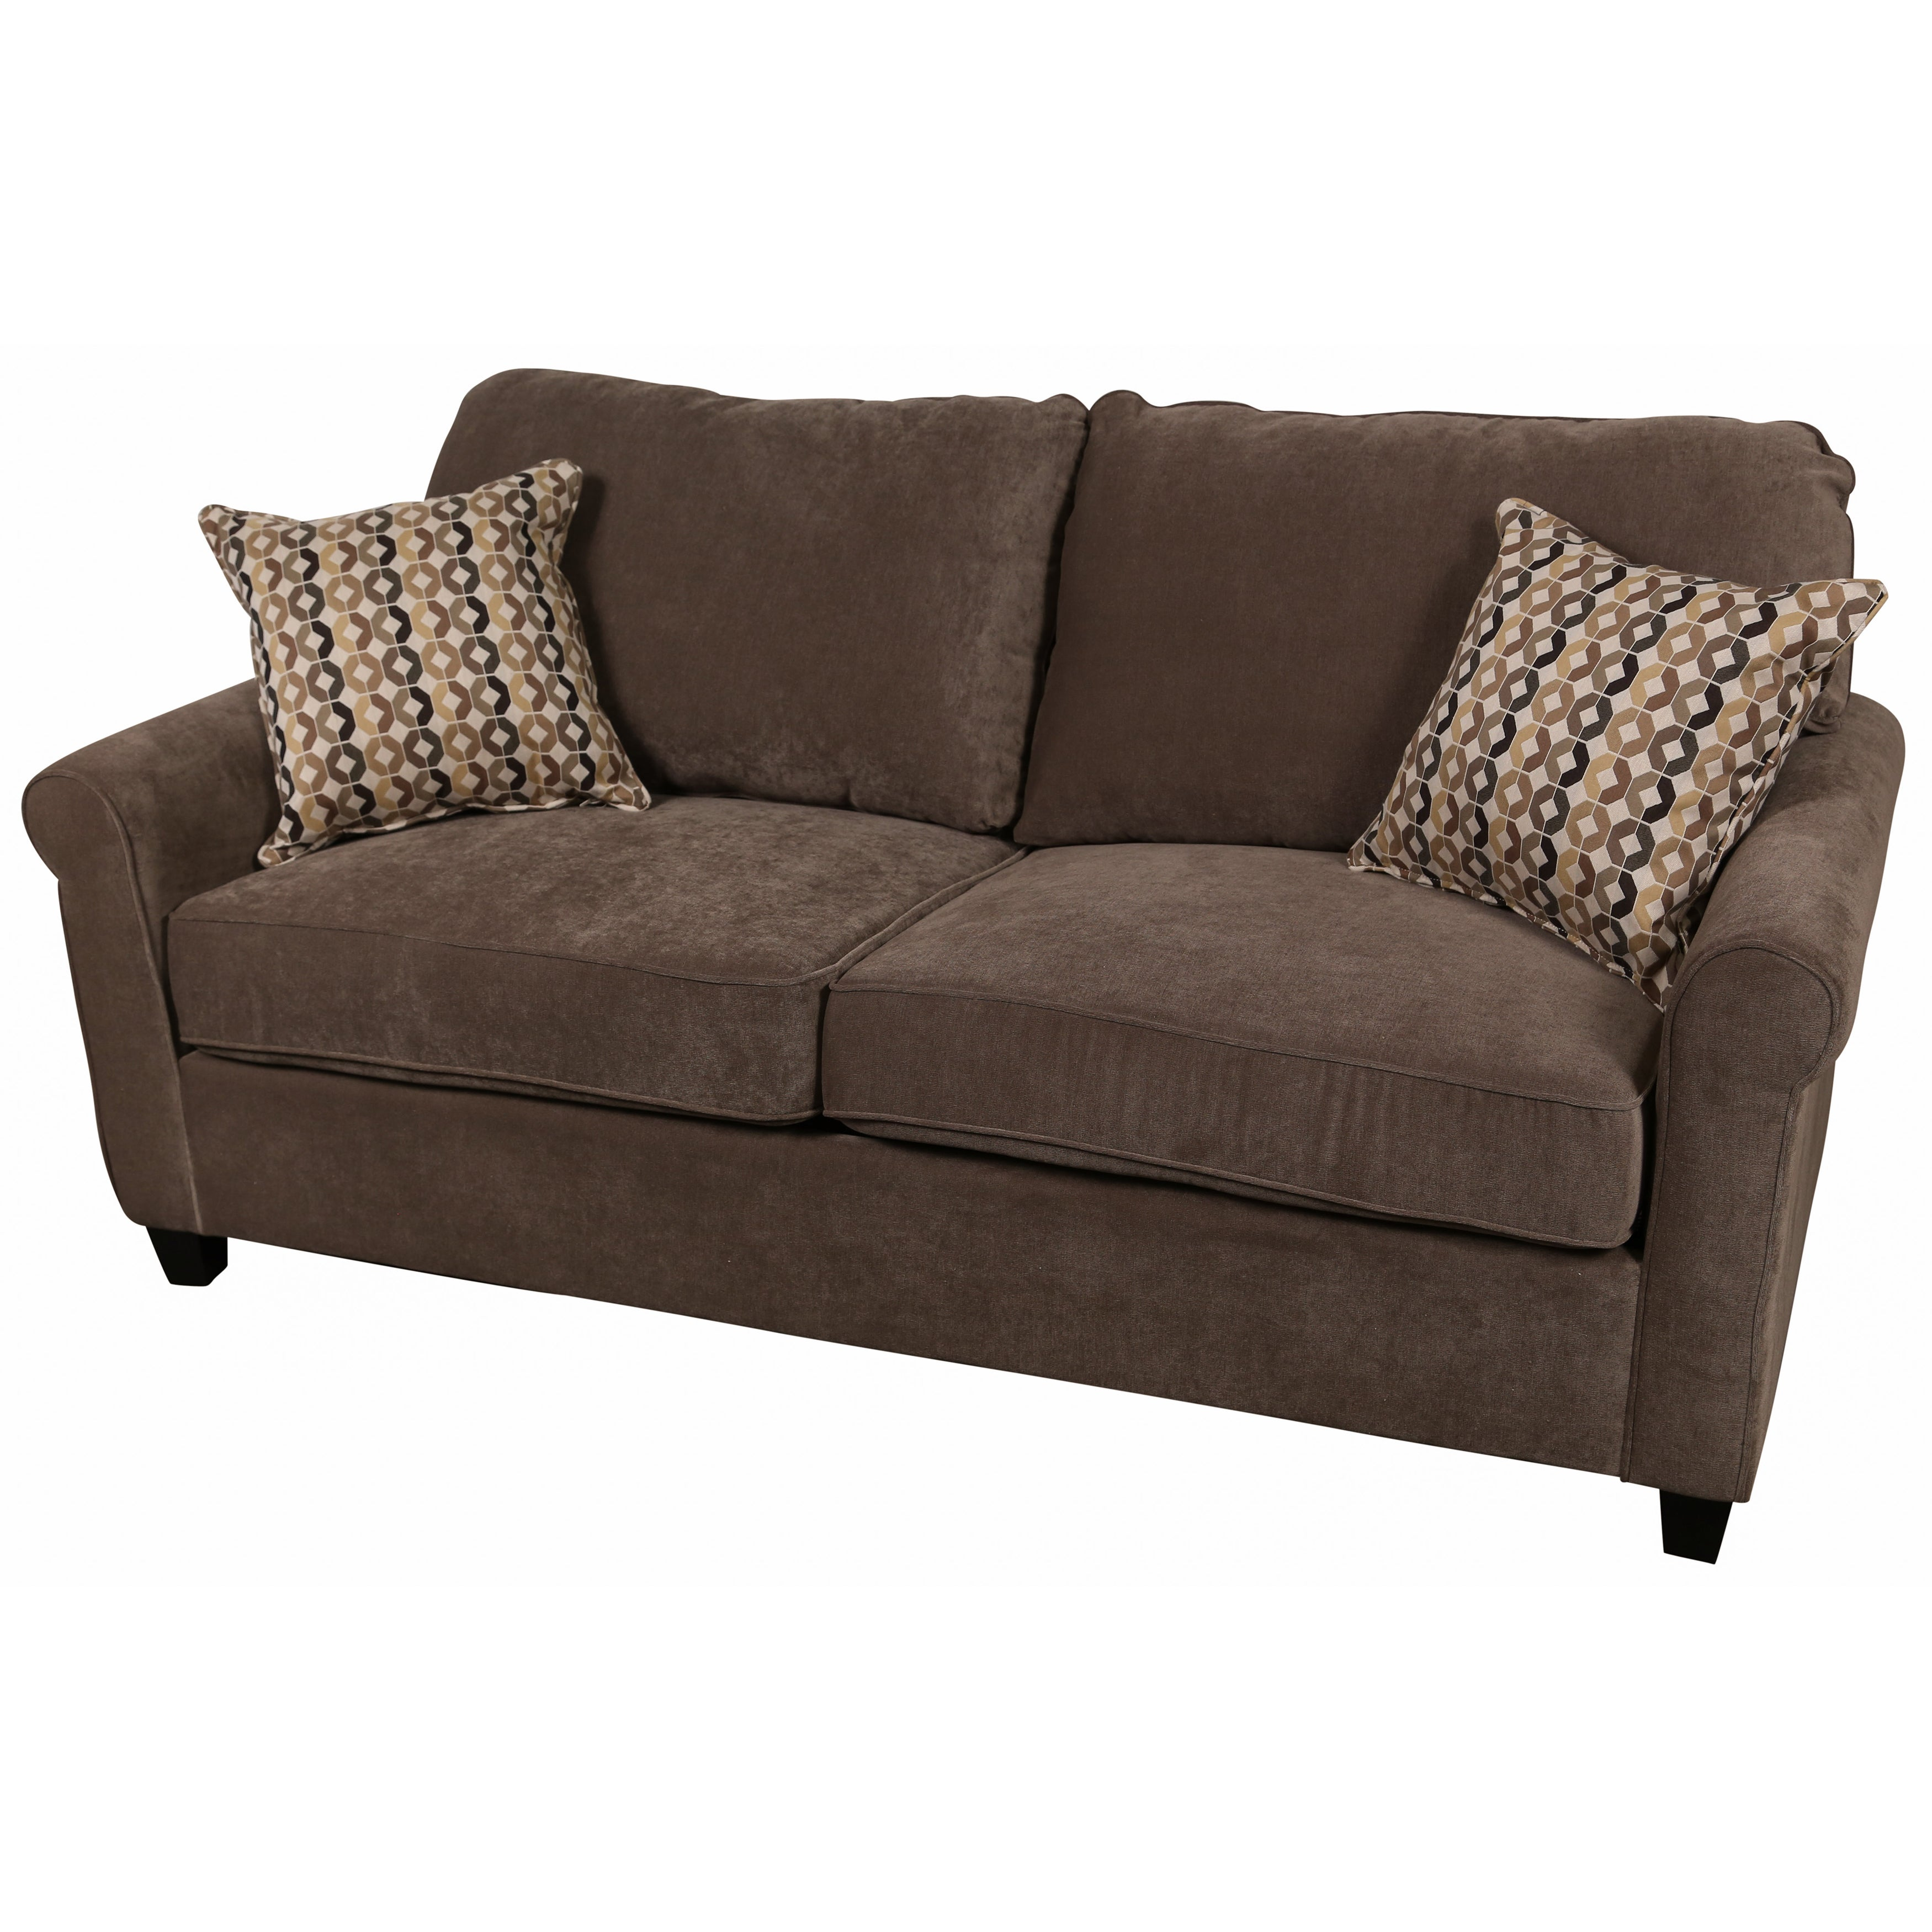 Porter Serena Warm Grey Microfiber Queen Sleeper Sofa With Two Woven Accent Pillows Free Shipping Today 13477178